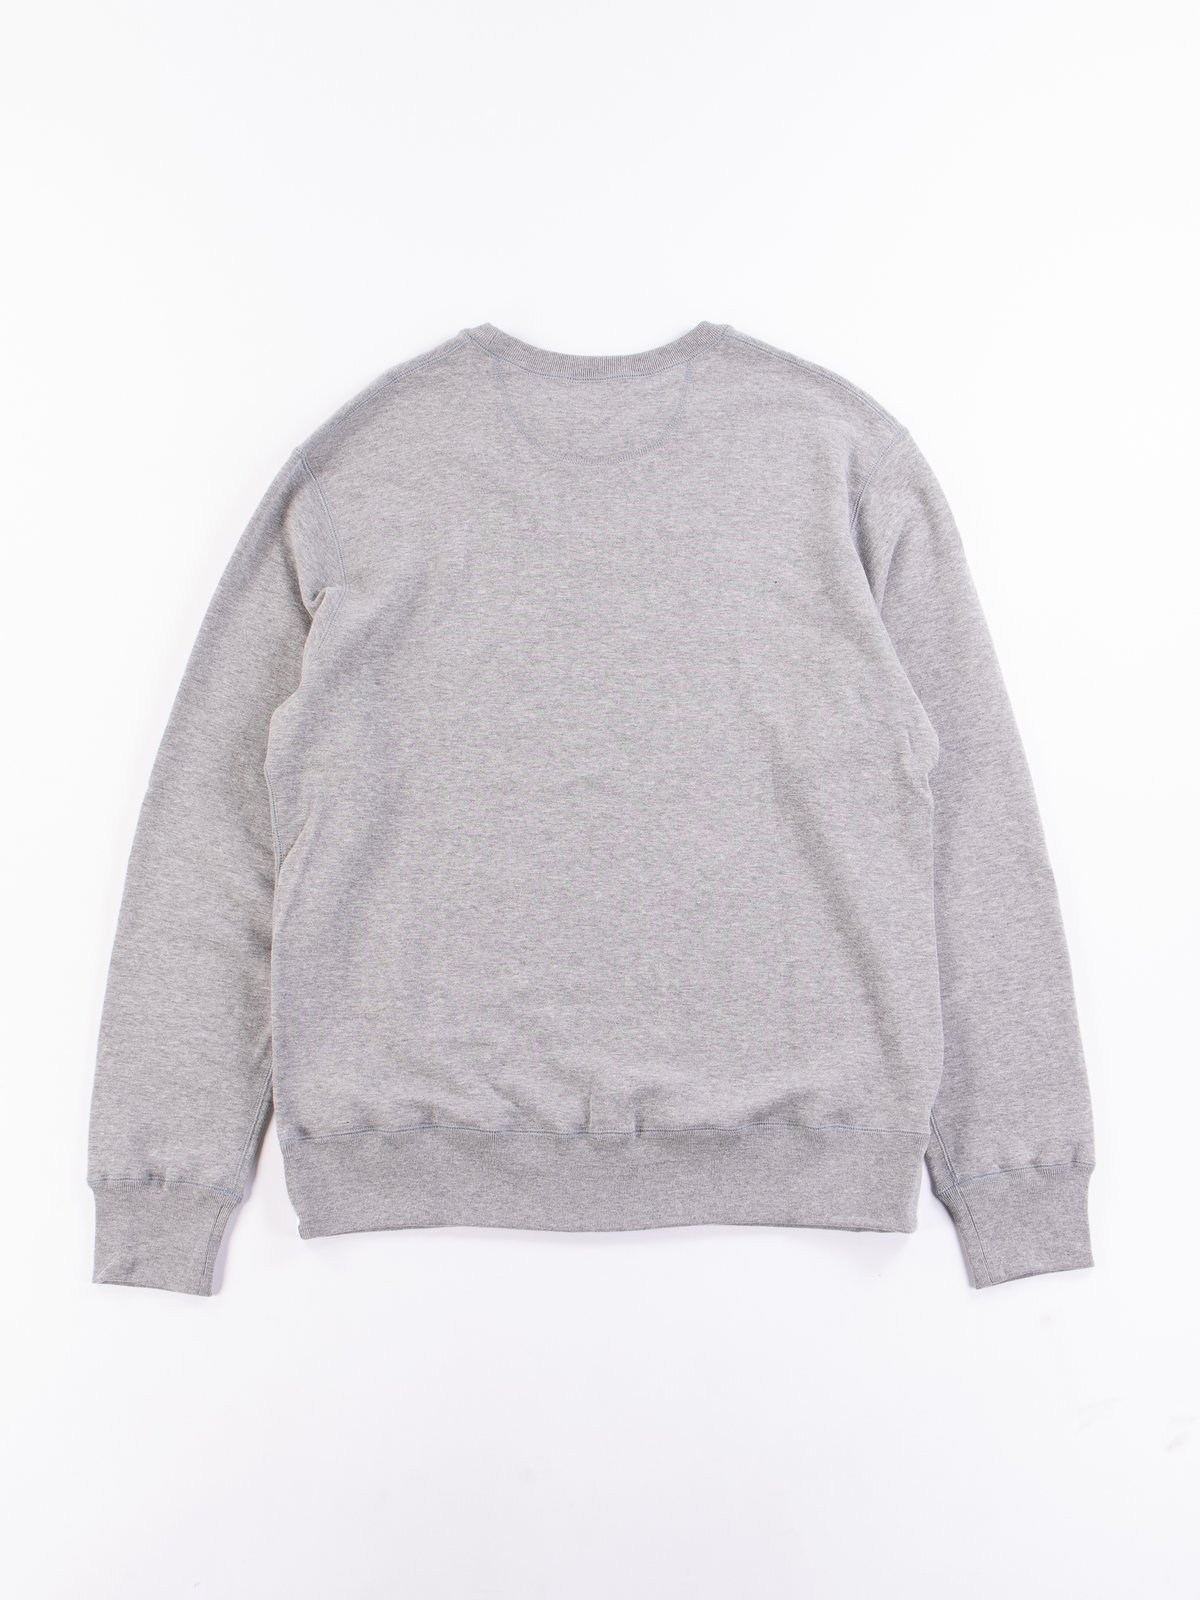 GR7 Pullover Crew - Image 4